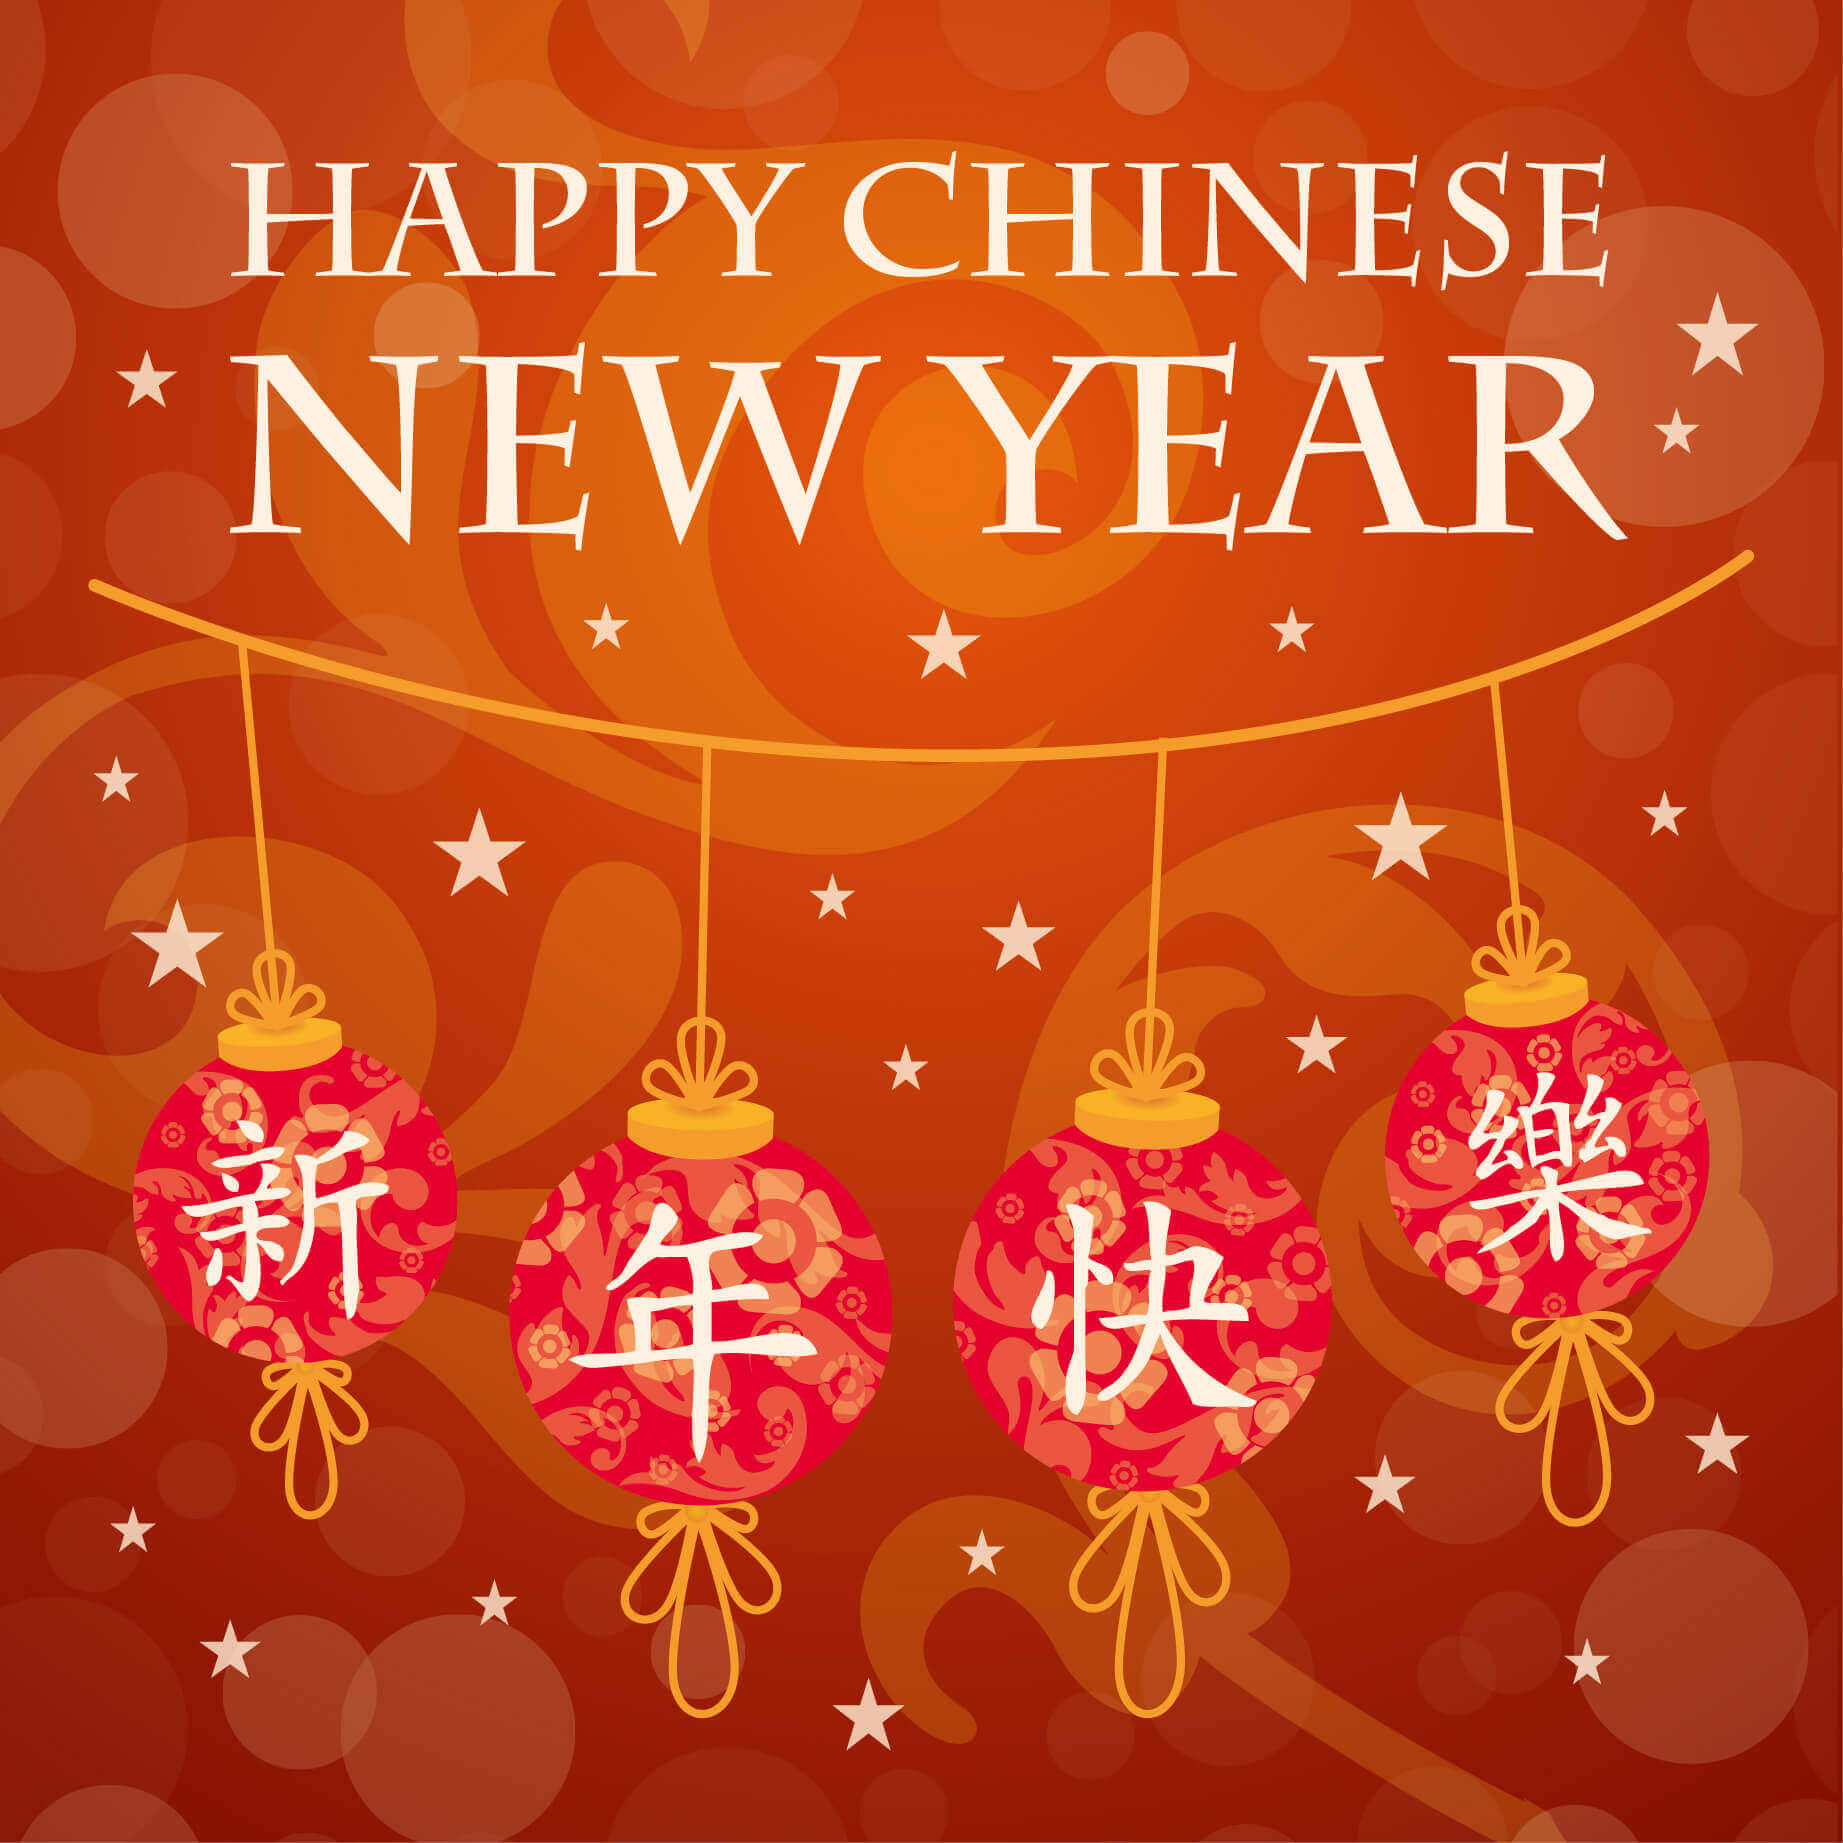 Chinese new year greeting card davora trade website chinese new year greeting card m4hsunfo